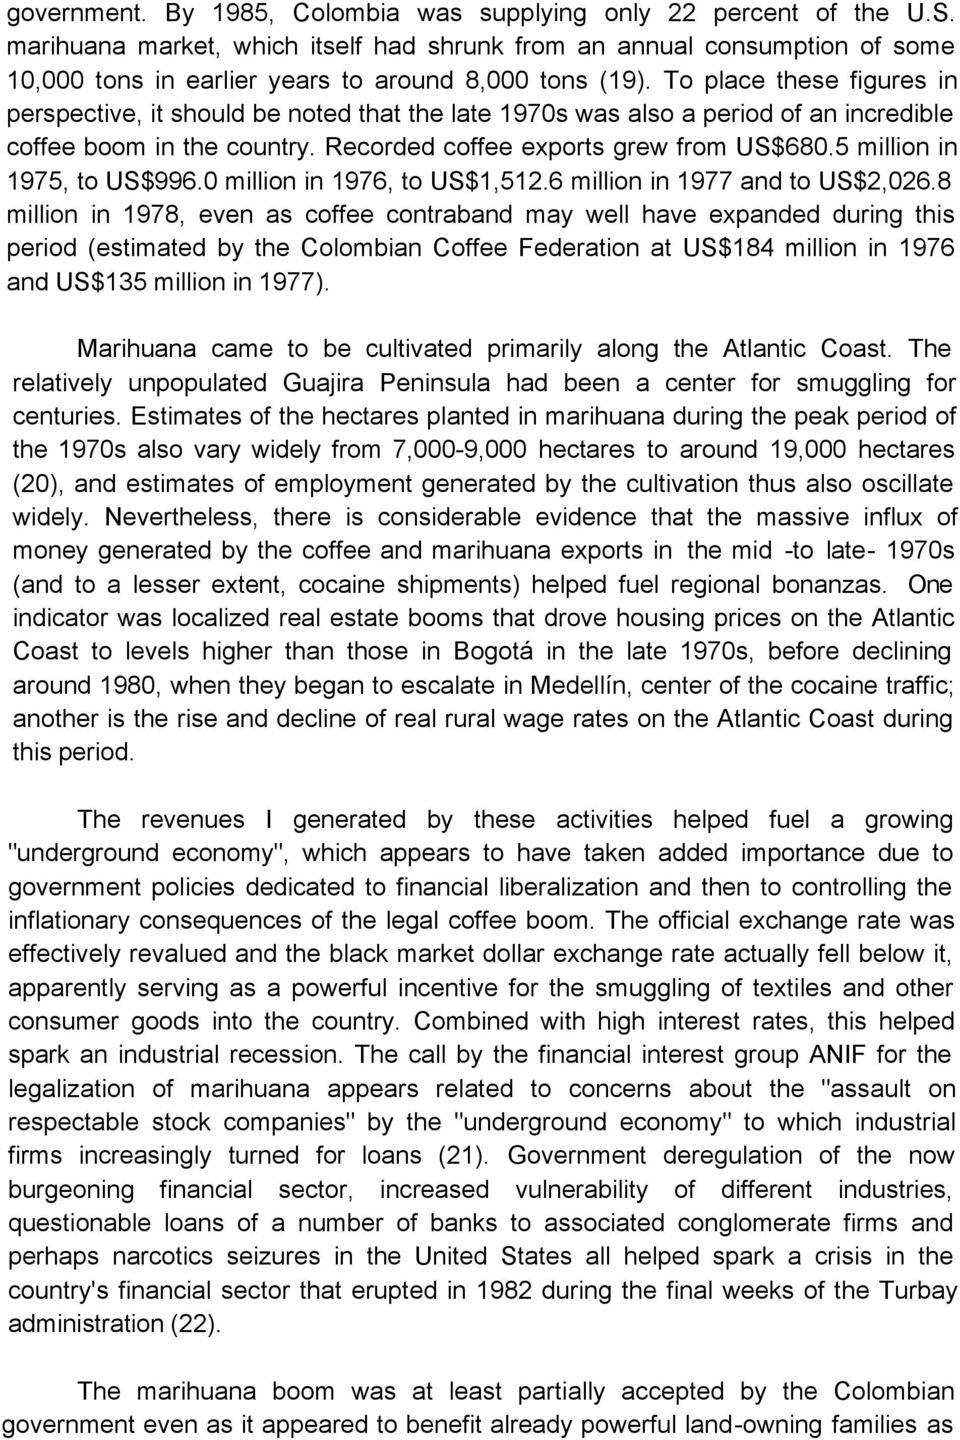 To place these figures in perspective, it should be noted that the late 1970s was also a period of an incredible coffee boom in the country. Recorded coffee exports grew from US$680.